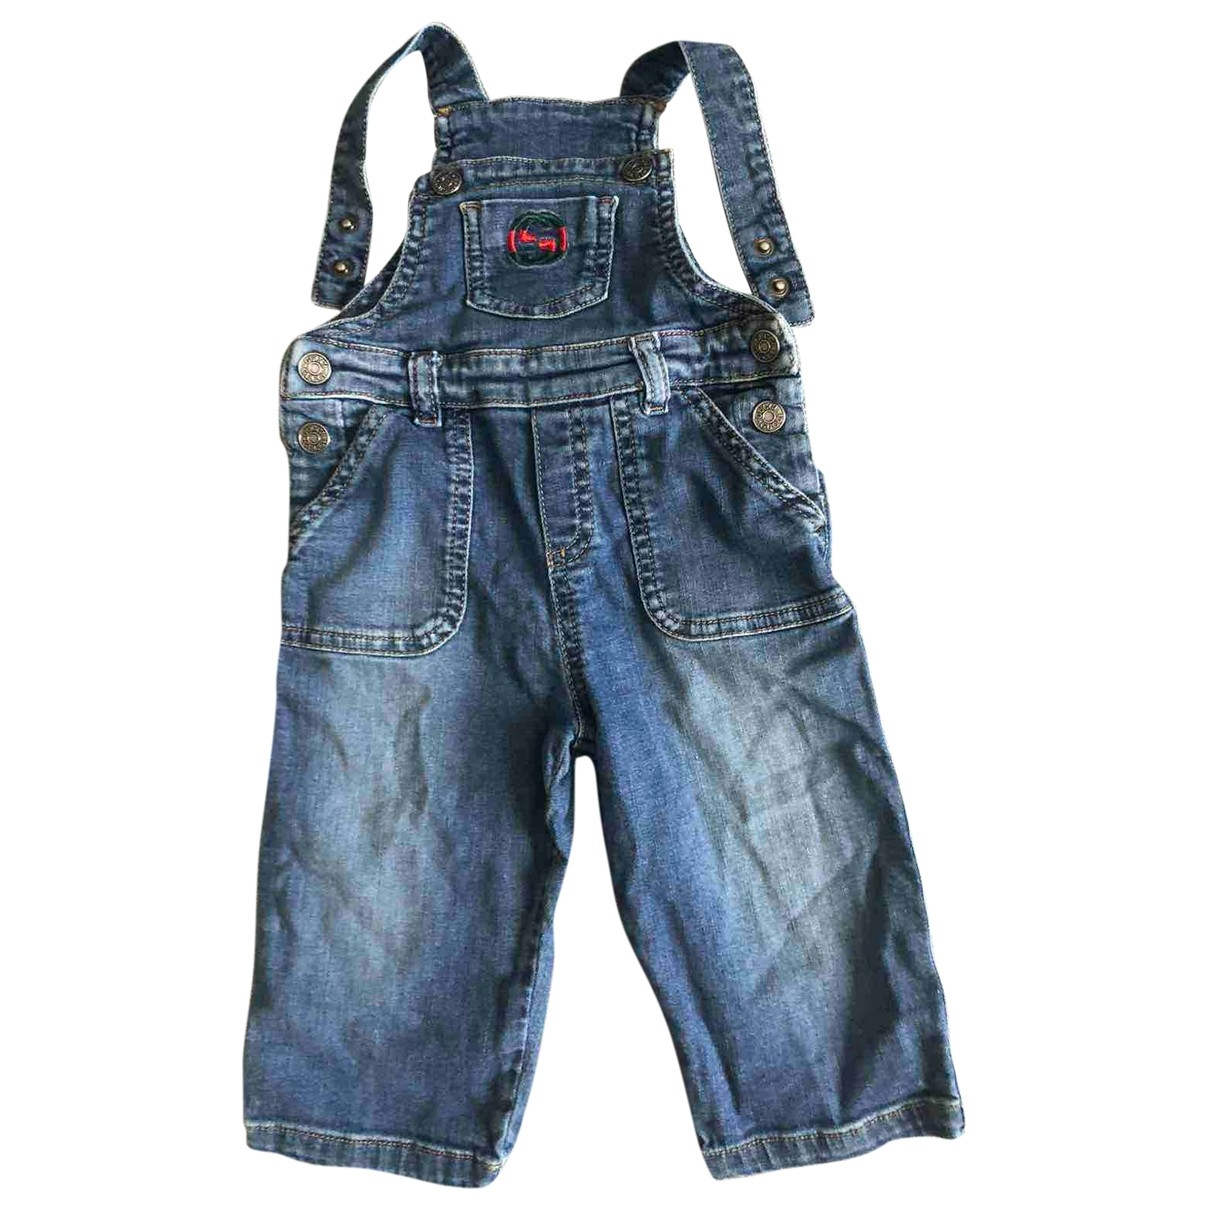 Gucci \N Blue Cotton Trousers for Kids 9 months - up to 71cm FR